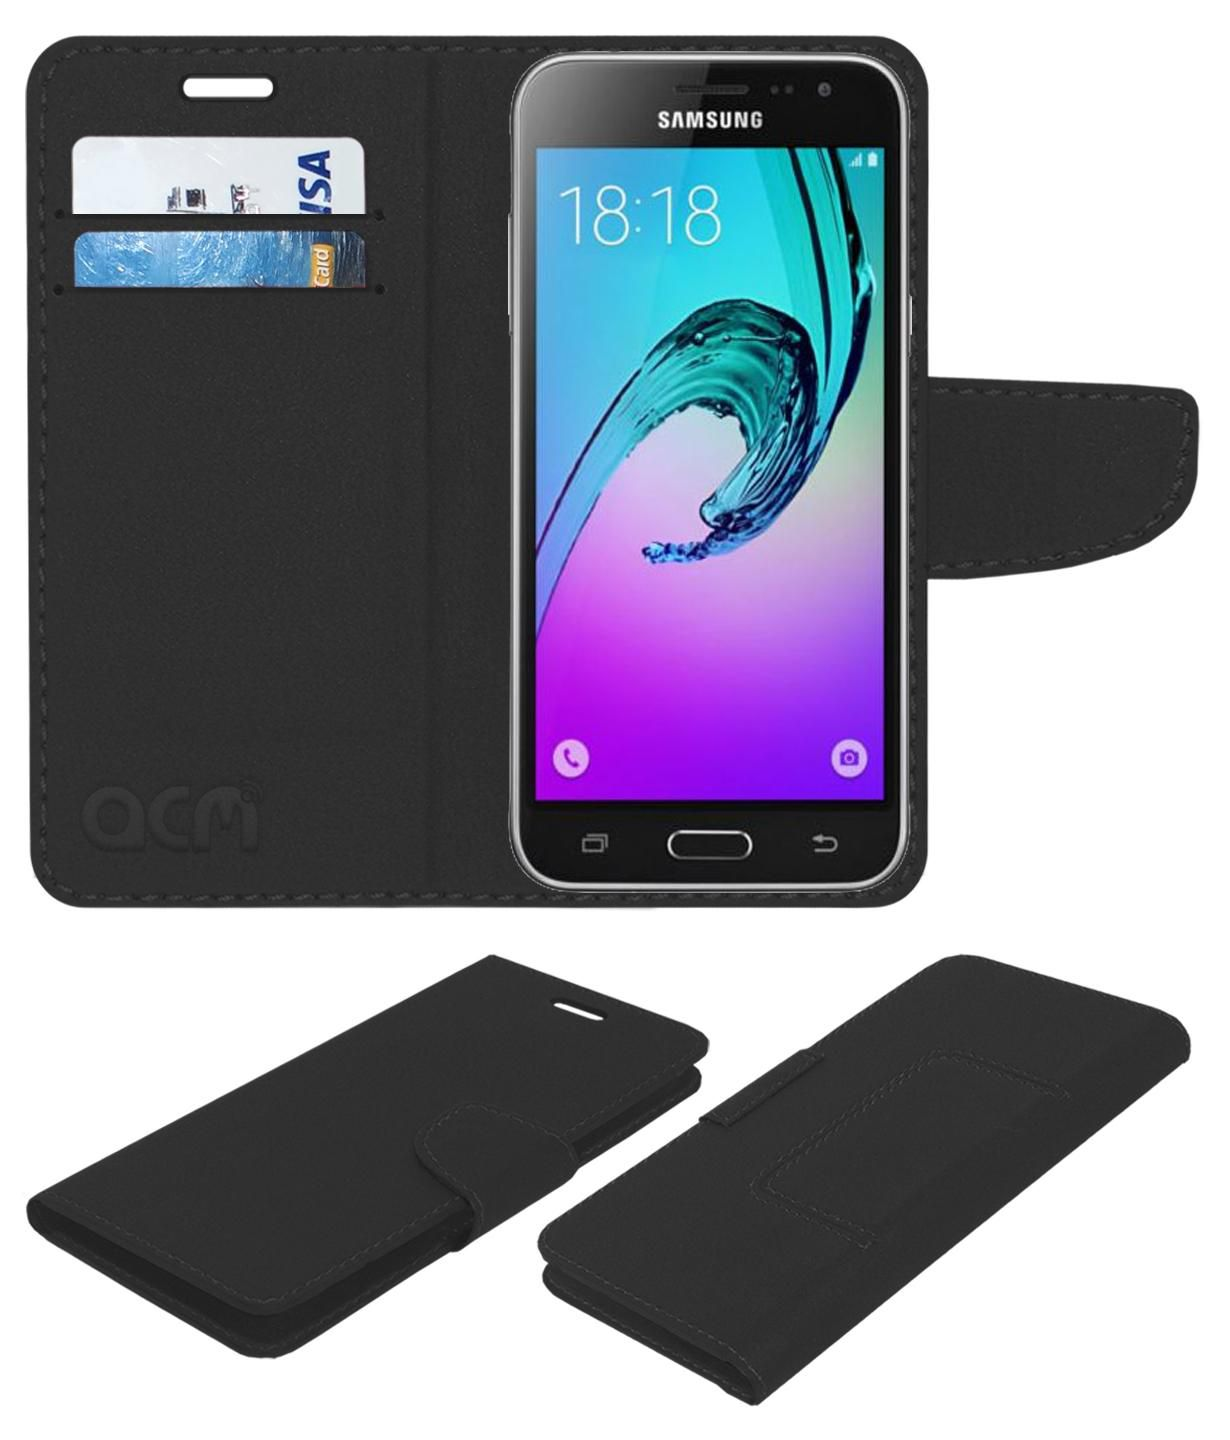 Samsung Galaxy J3 2016 Flip Cover by ACM - Black